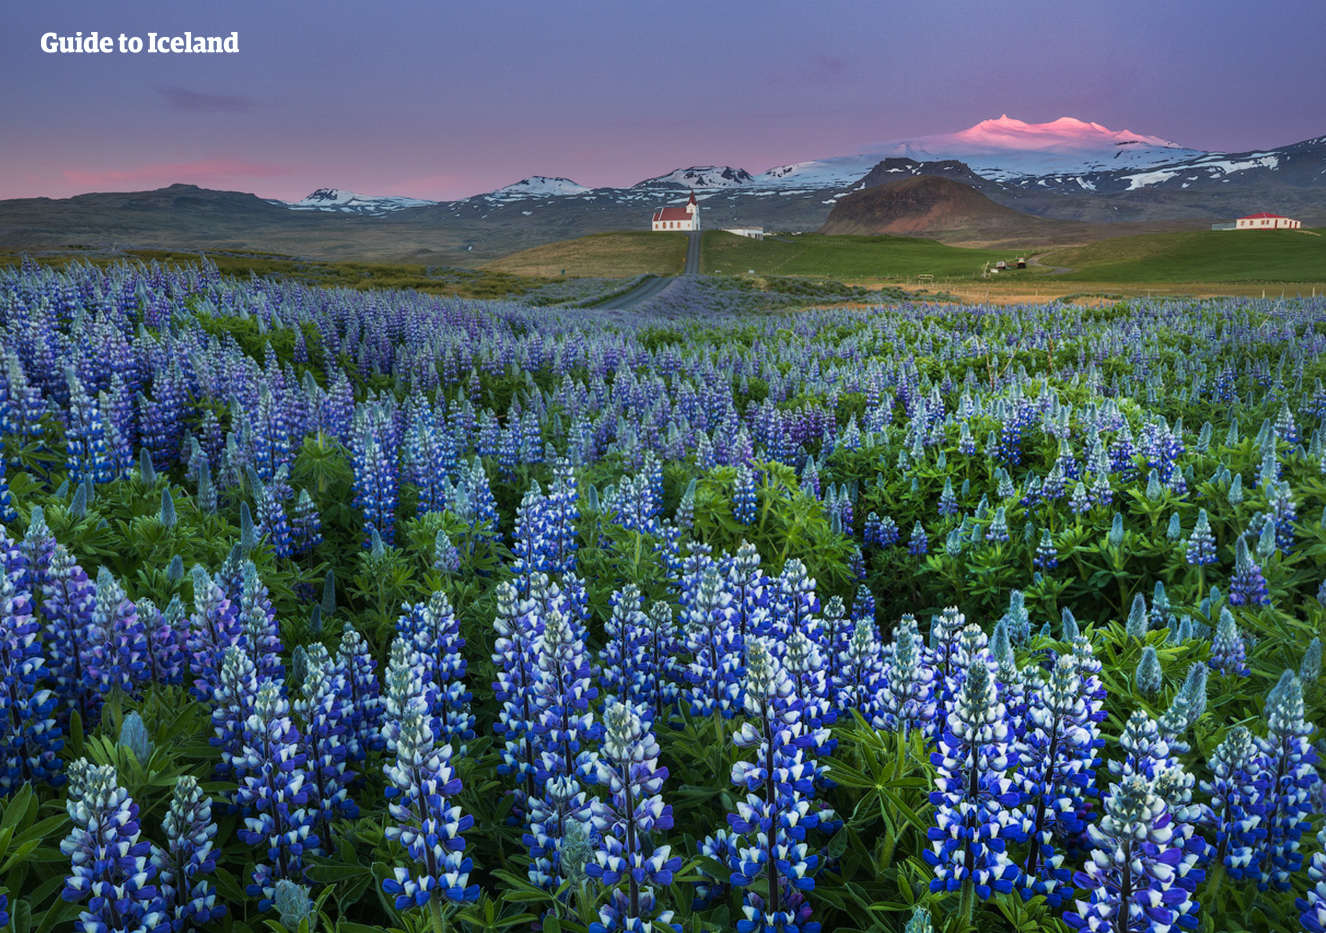 The Snæfellsnes Peninsula is covered with the beautiful Lupin flower in the summer.